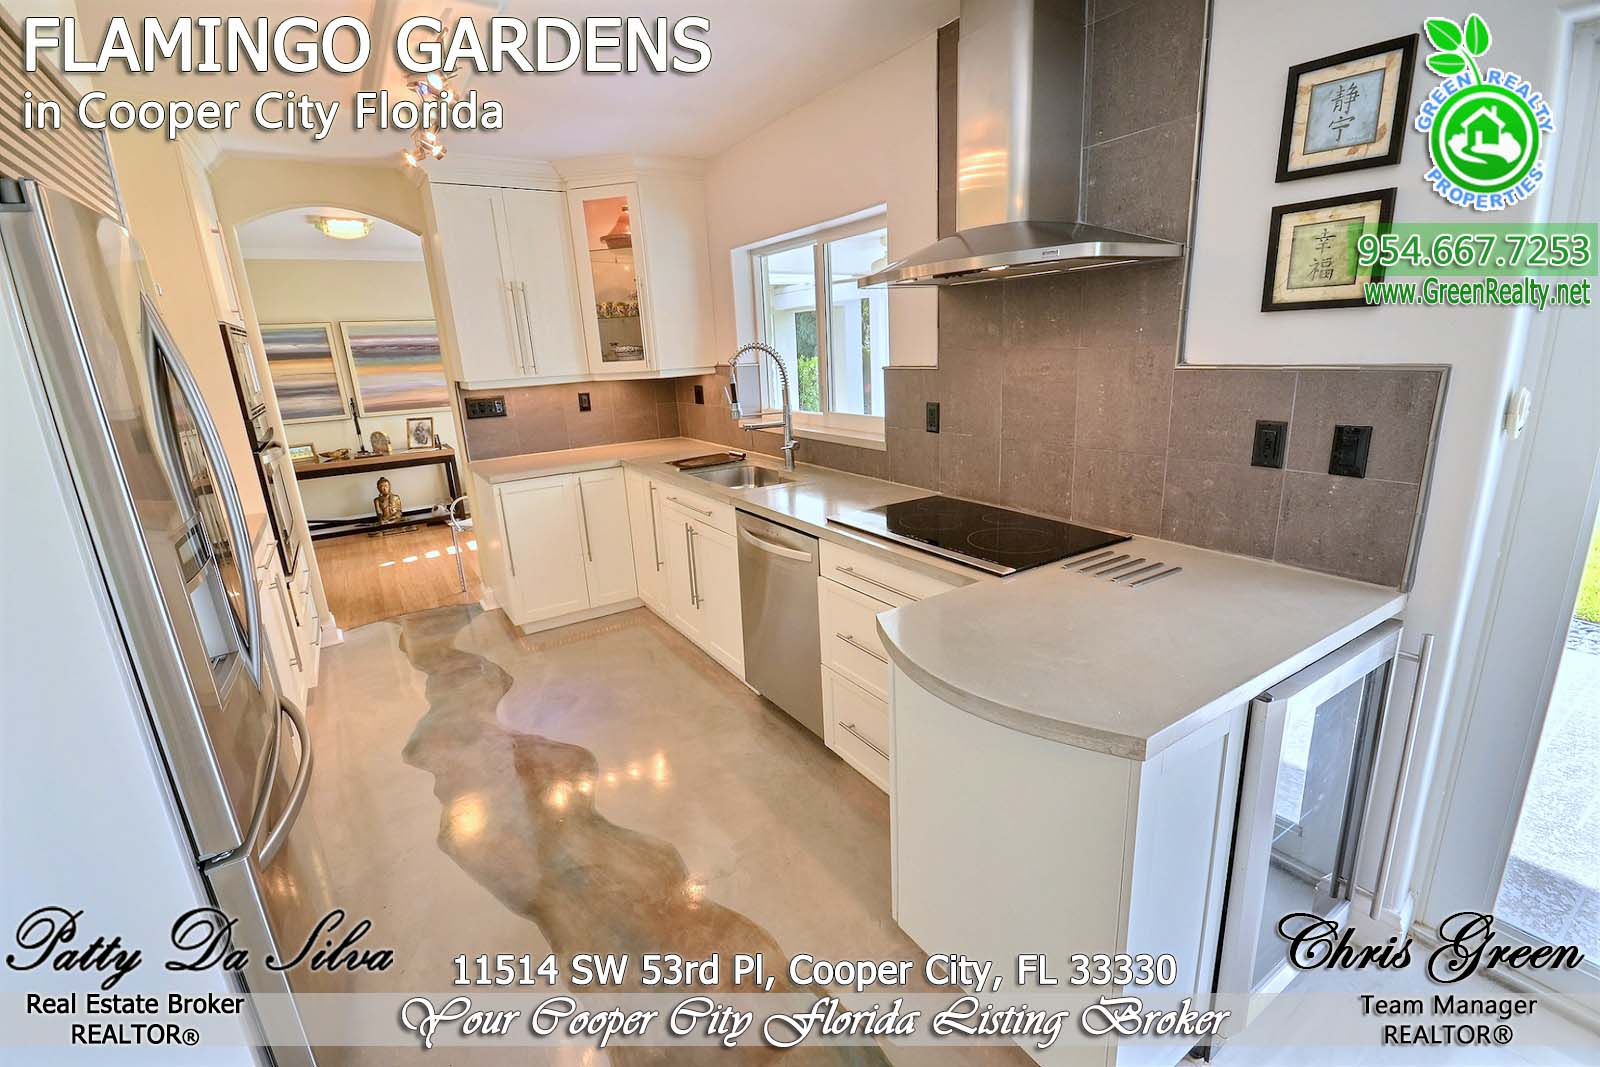 22 Flamingo Gardens Cooper City Homes